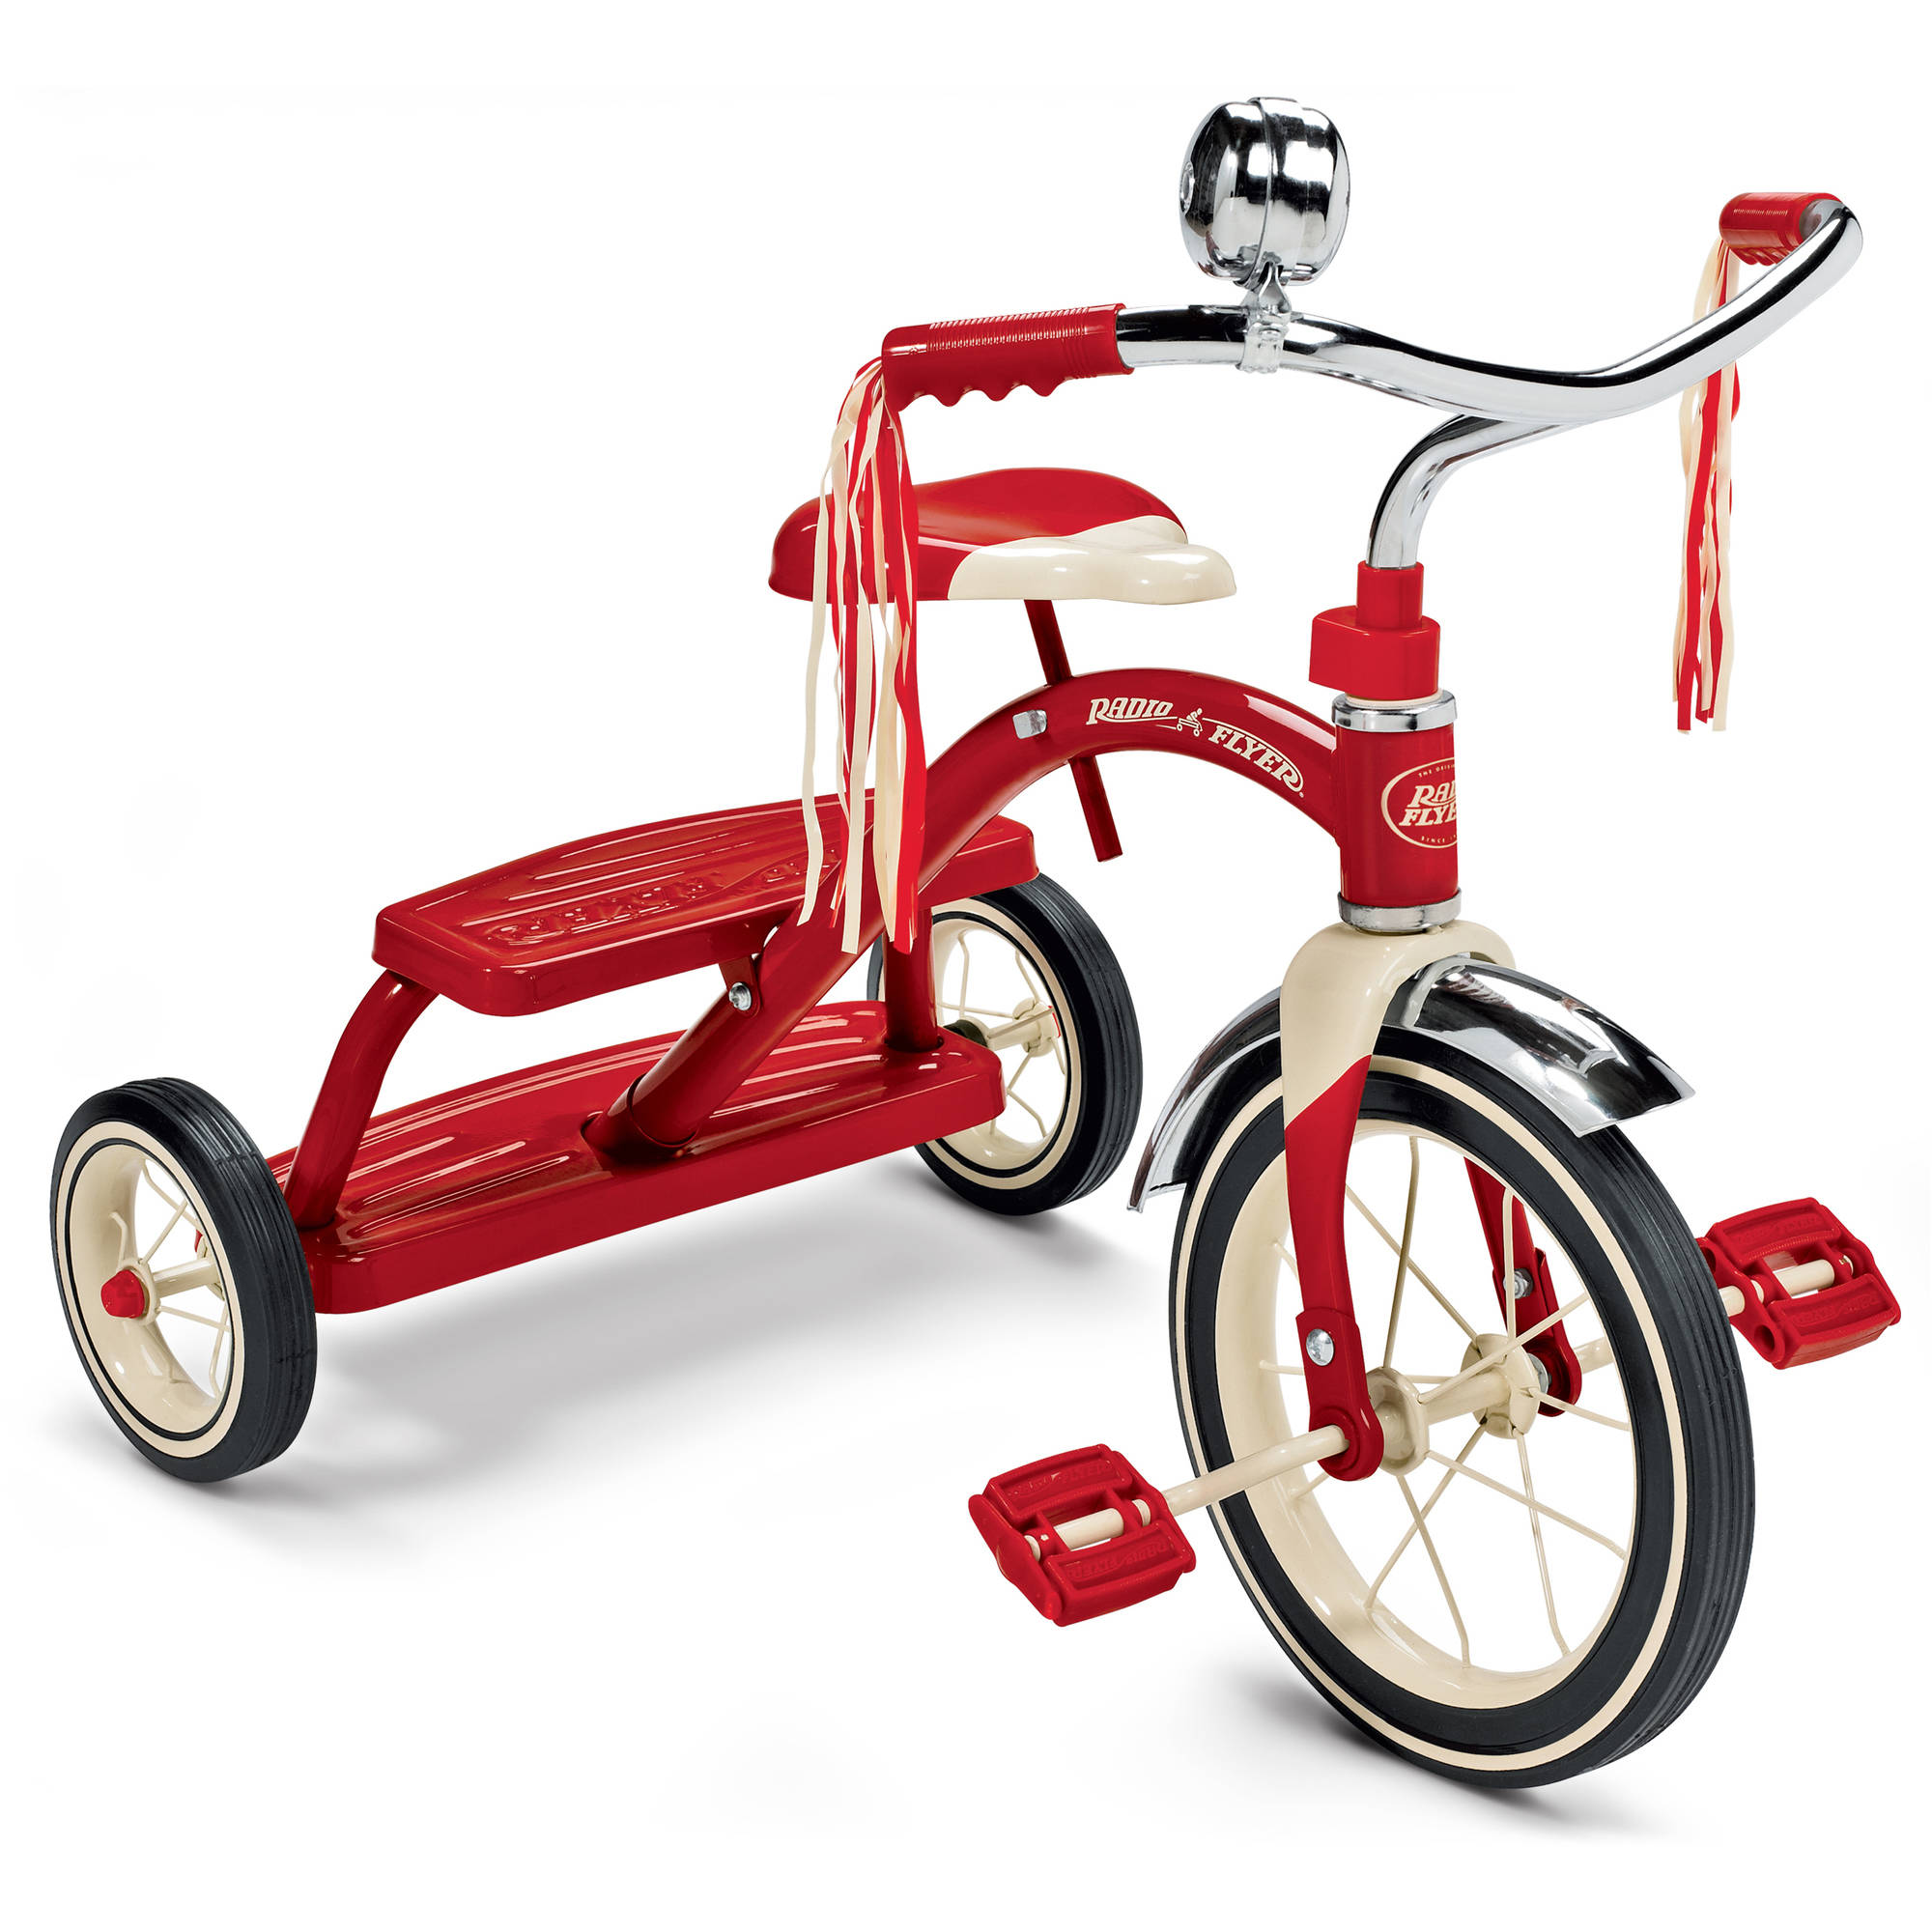 Radio Flyer Classic Red Dual-Deck Tricycle - Walmart.com